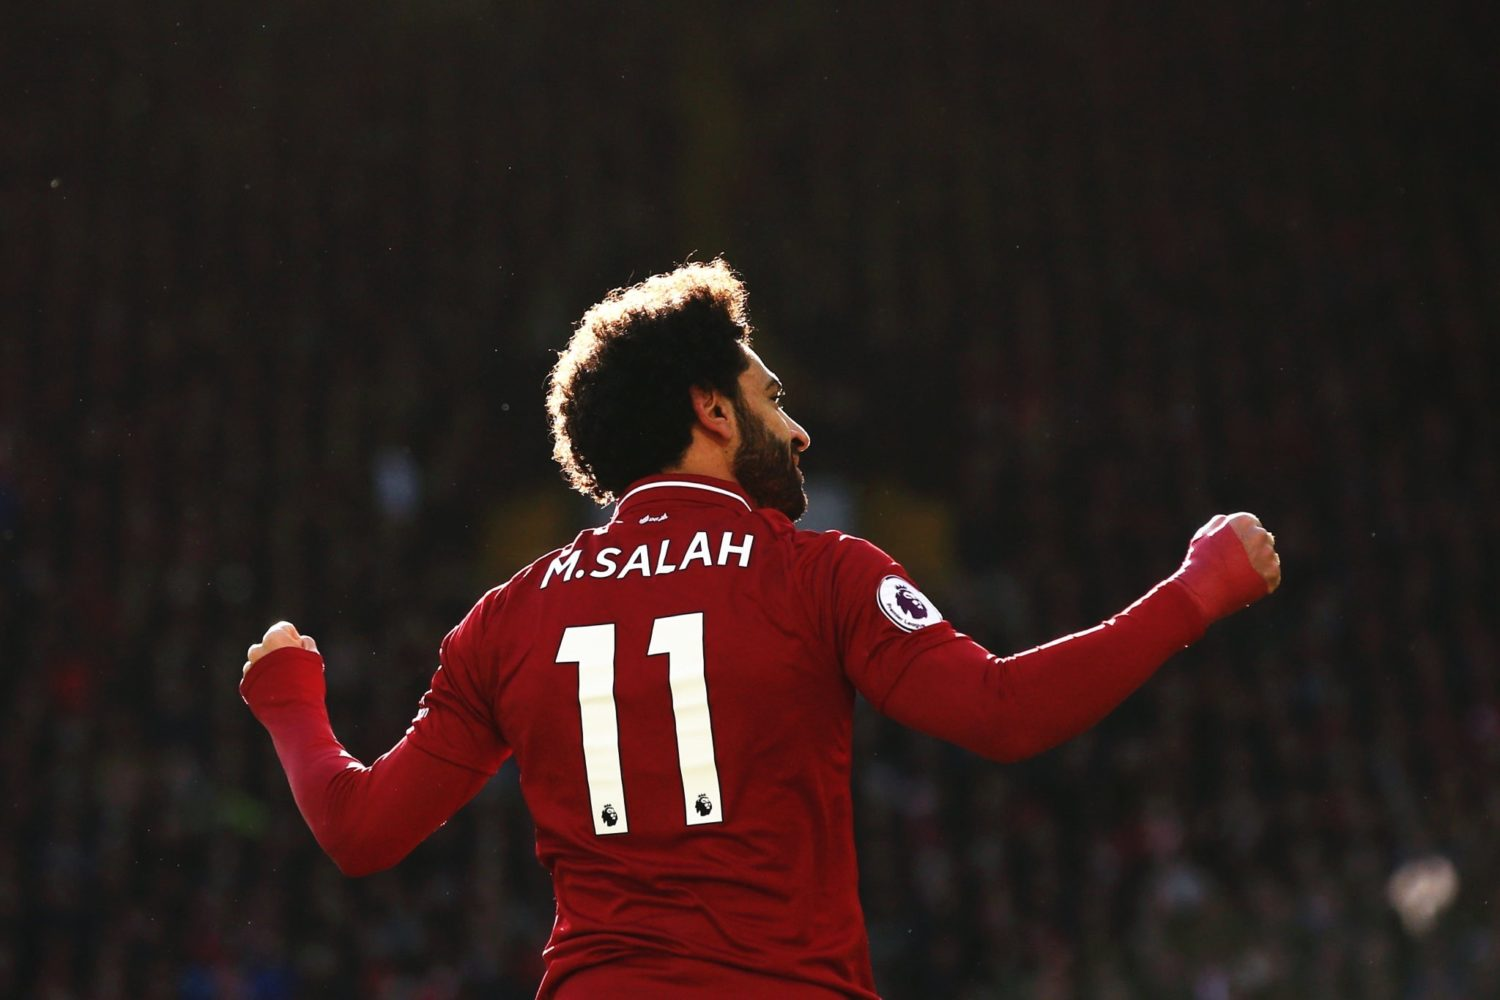 Video: Mohamed Salah puts Liverpool 1-0 up after Fulham's disallowed goal